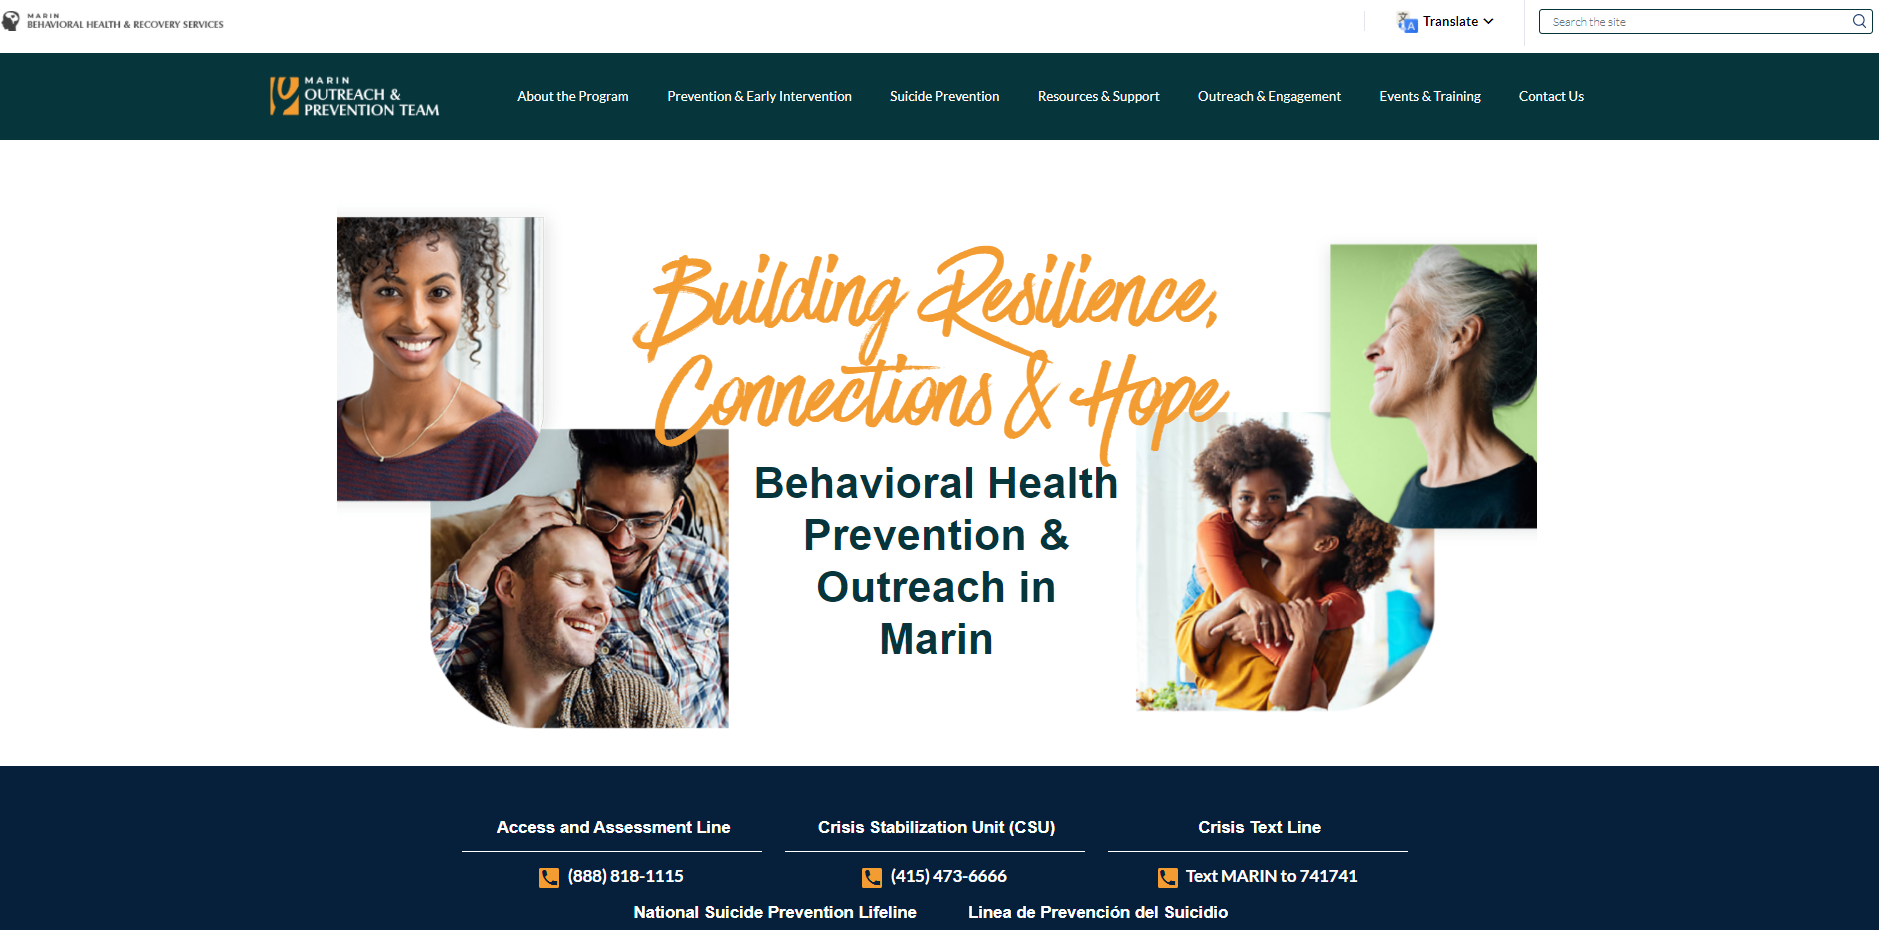 Marin County prevention and outreach website